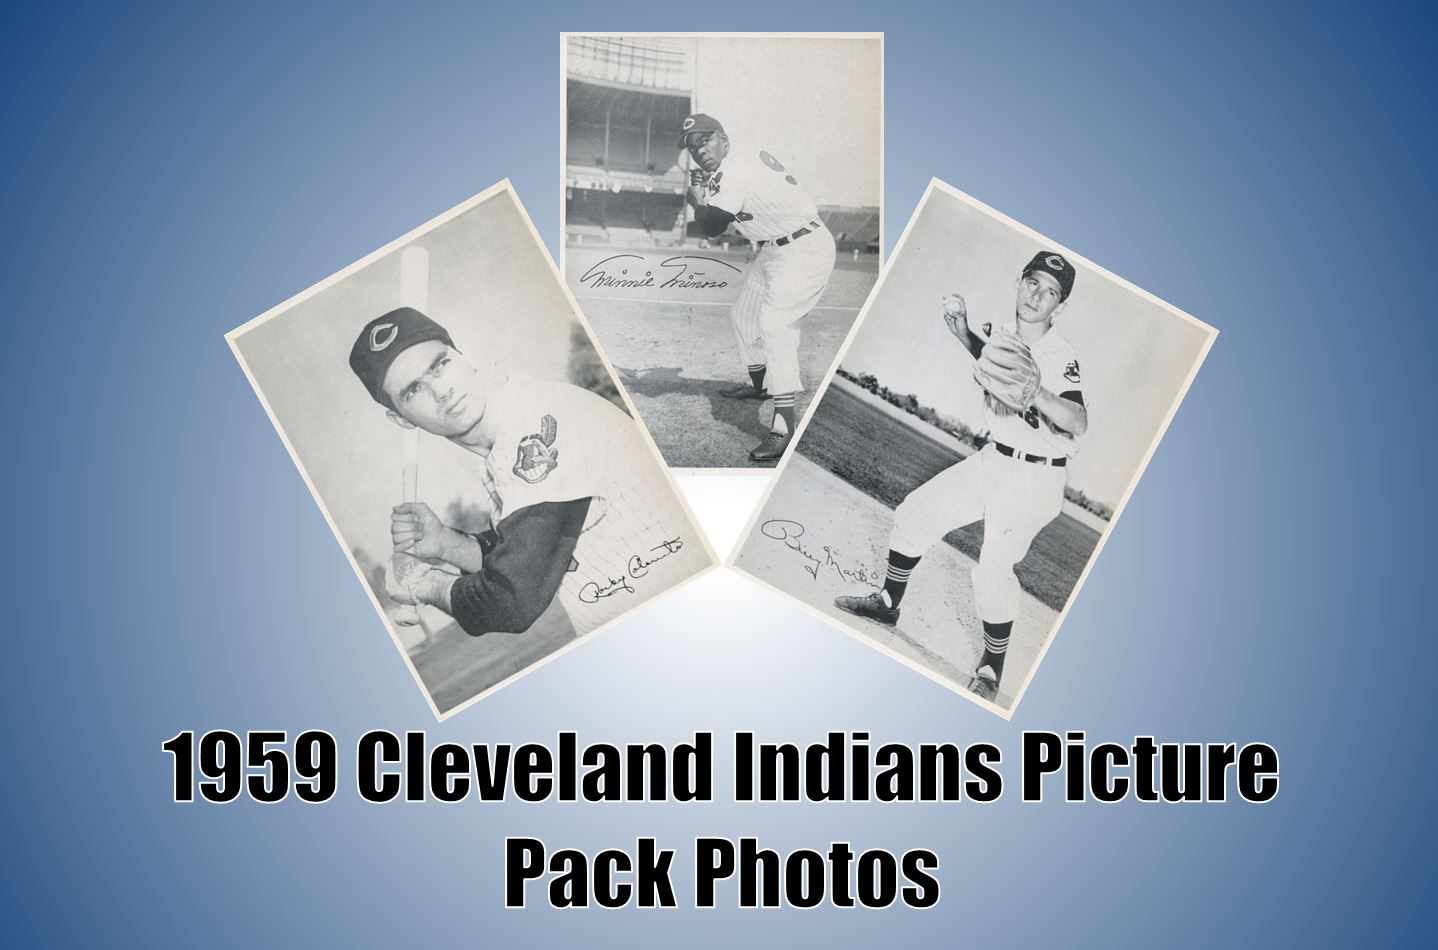 1959 Cleveland Indians Picture Pack Photos